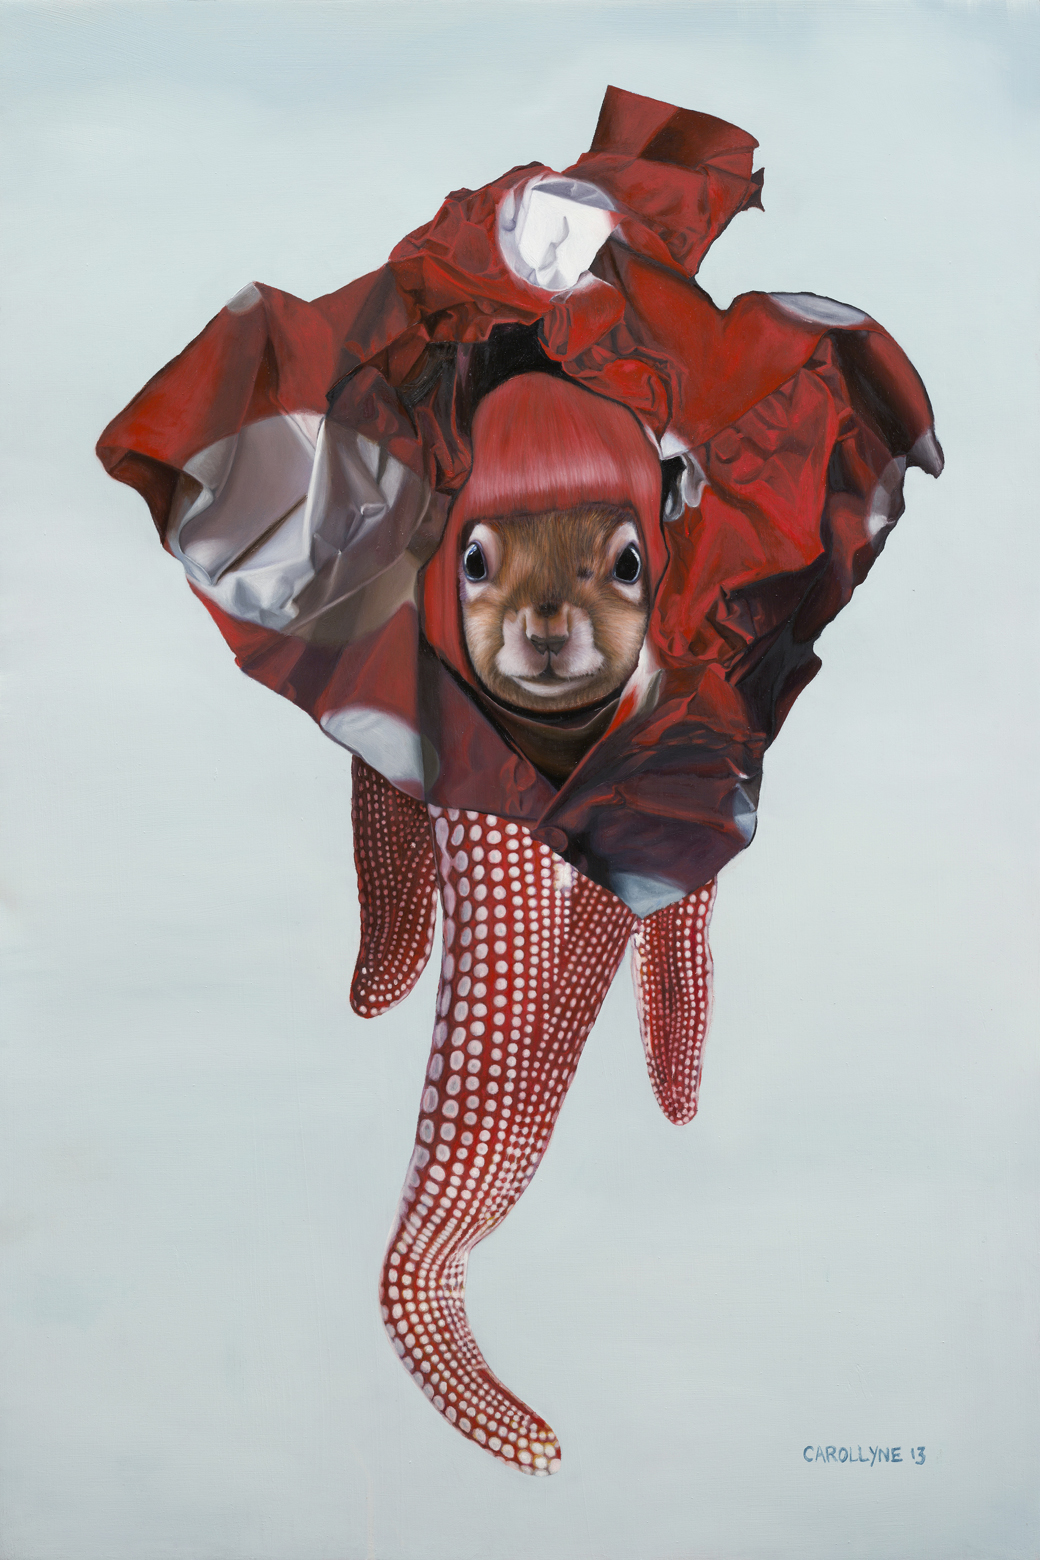 Yayoi Kusama Squirrel, 24 x 35, Oil on Wood Panel, 2013